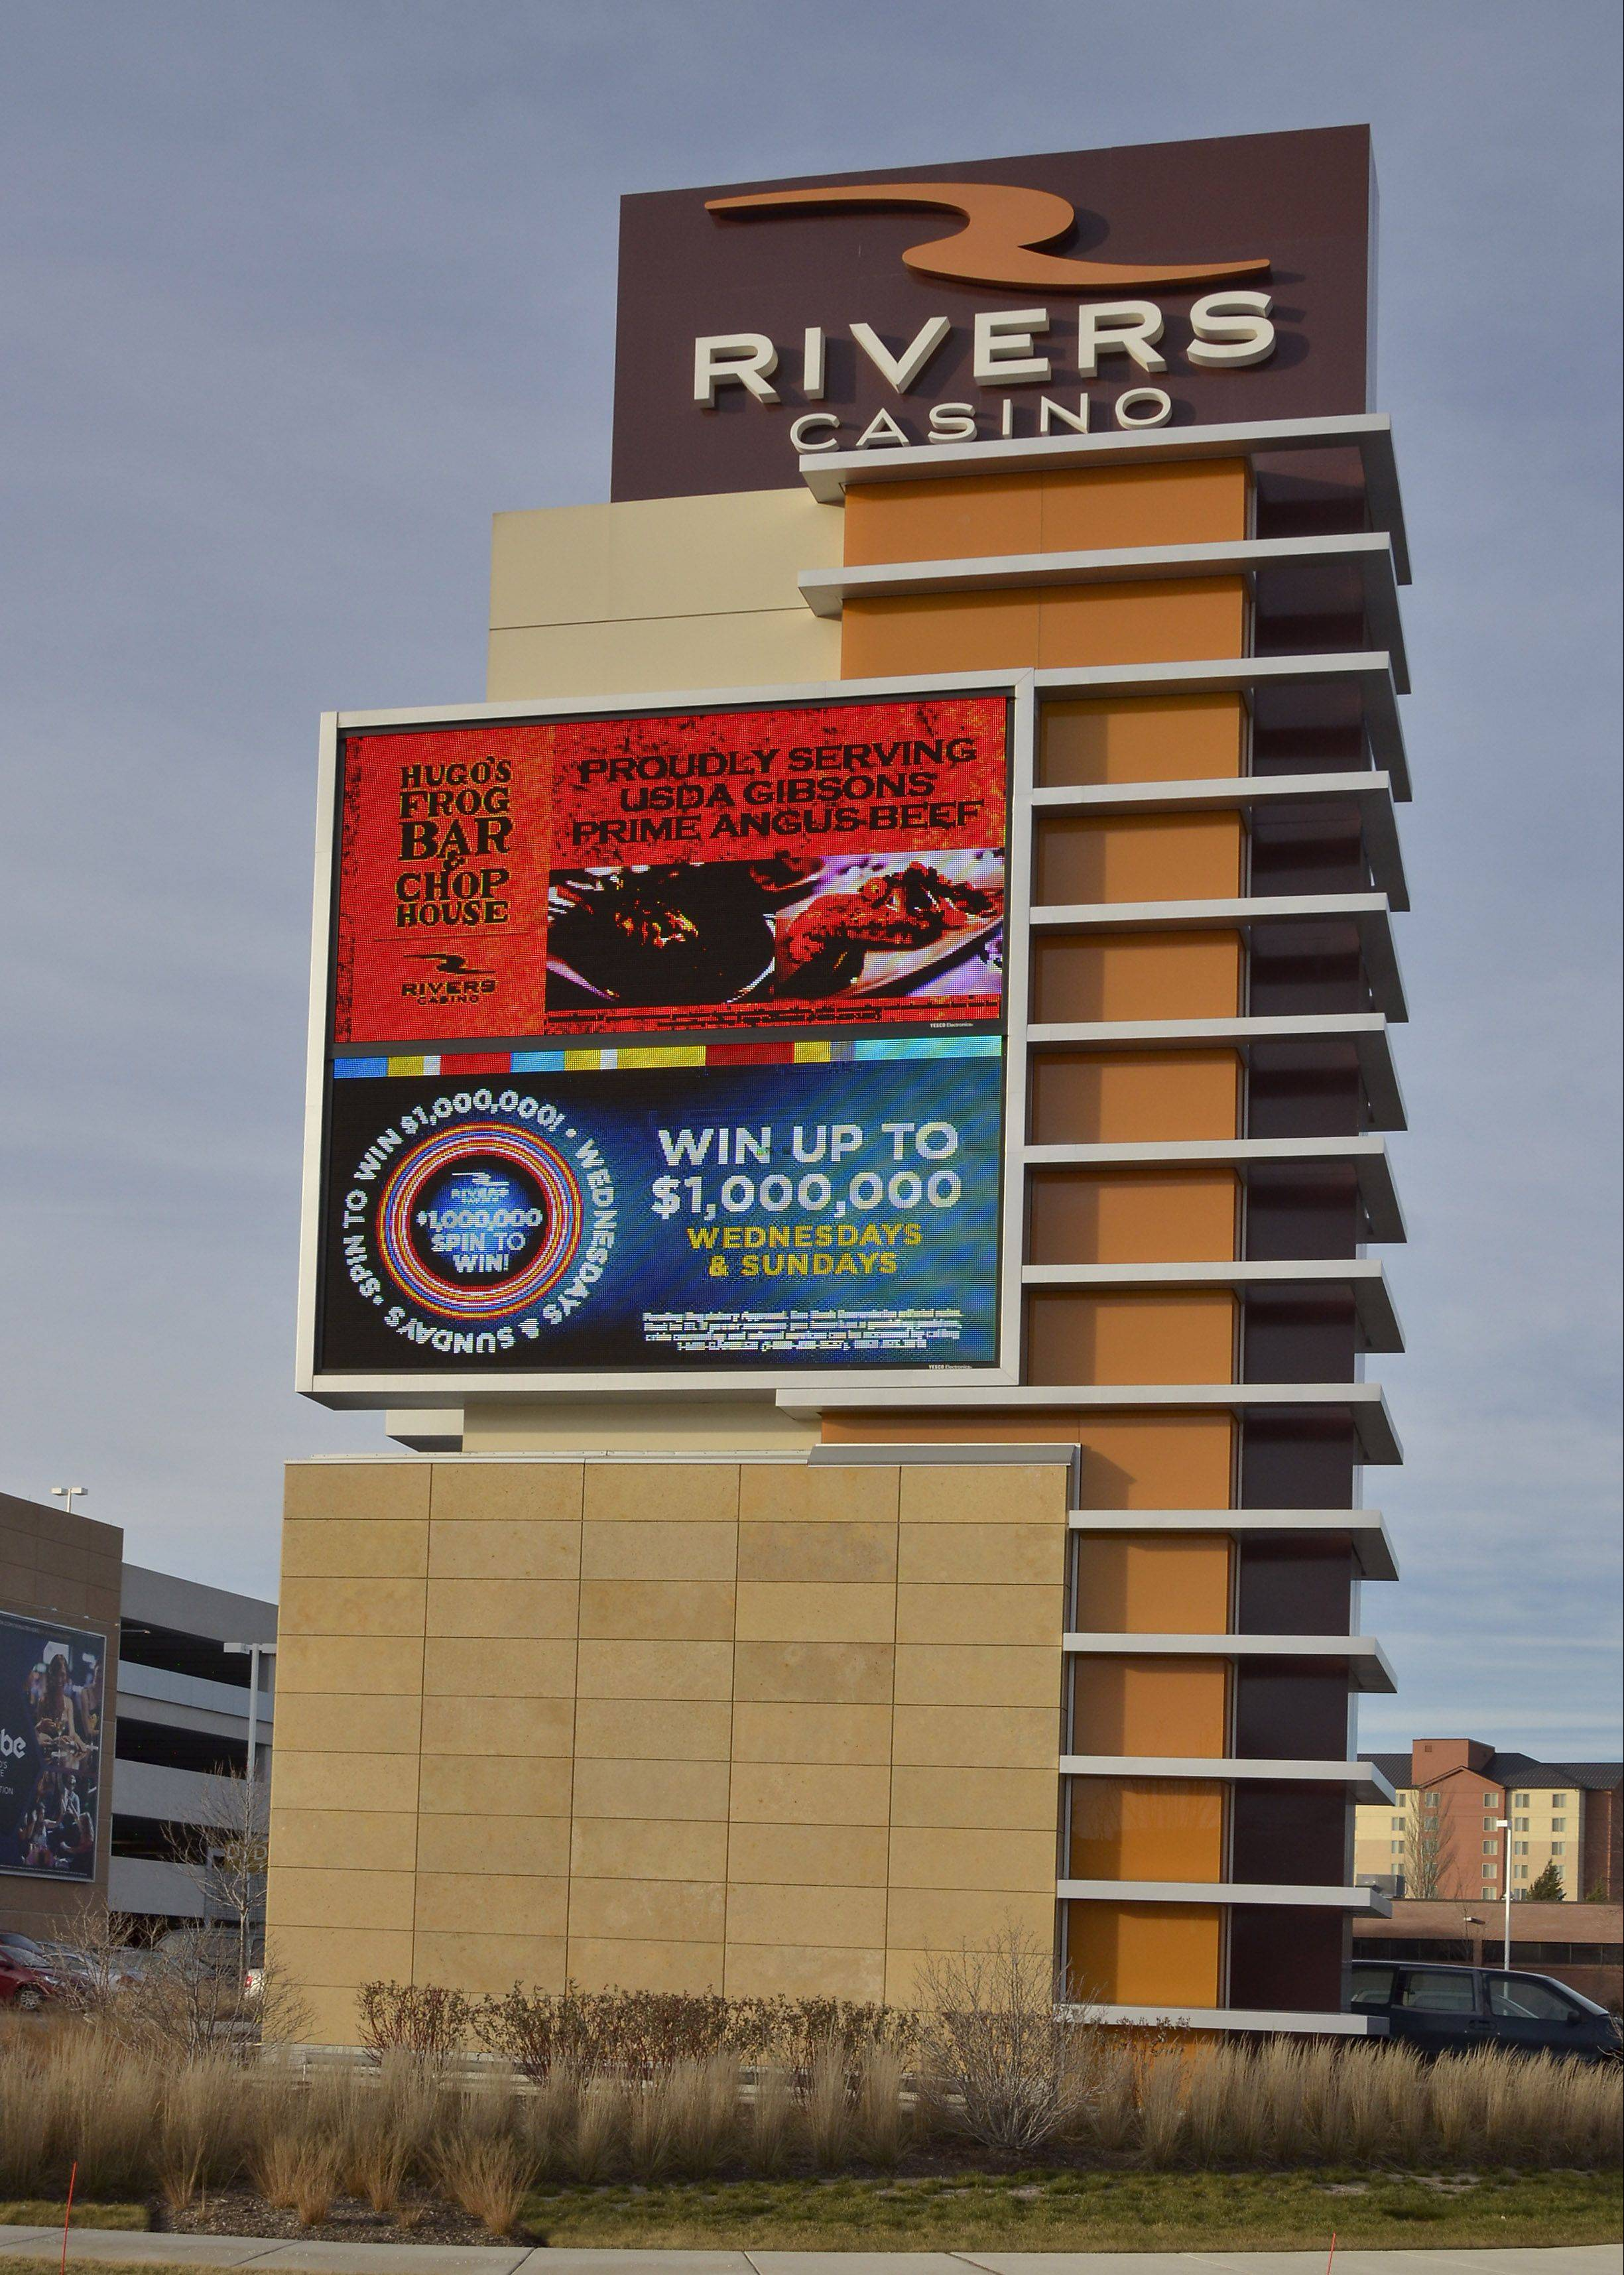 The Rivers Casino in Des Plaines is bringing in more revenue than any other casino in the state.